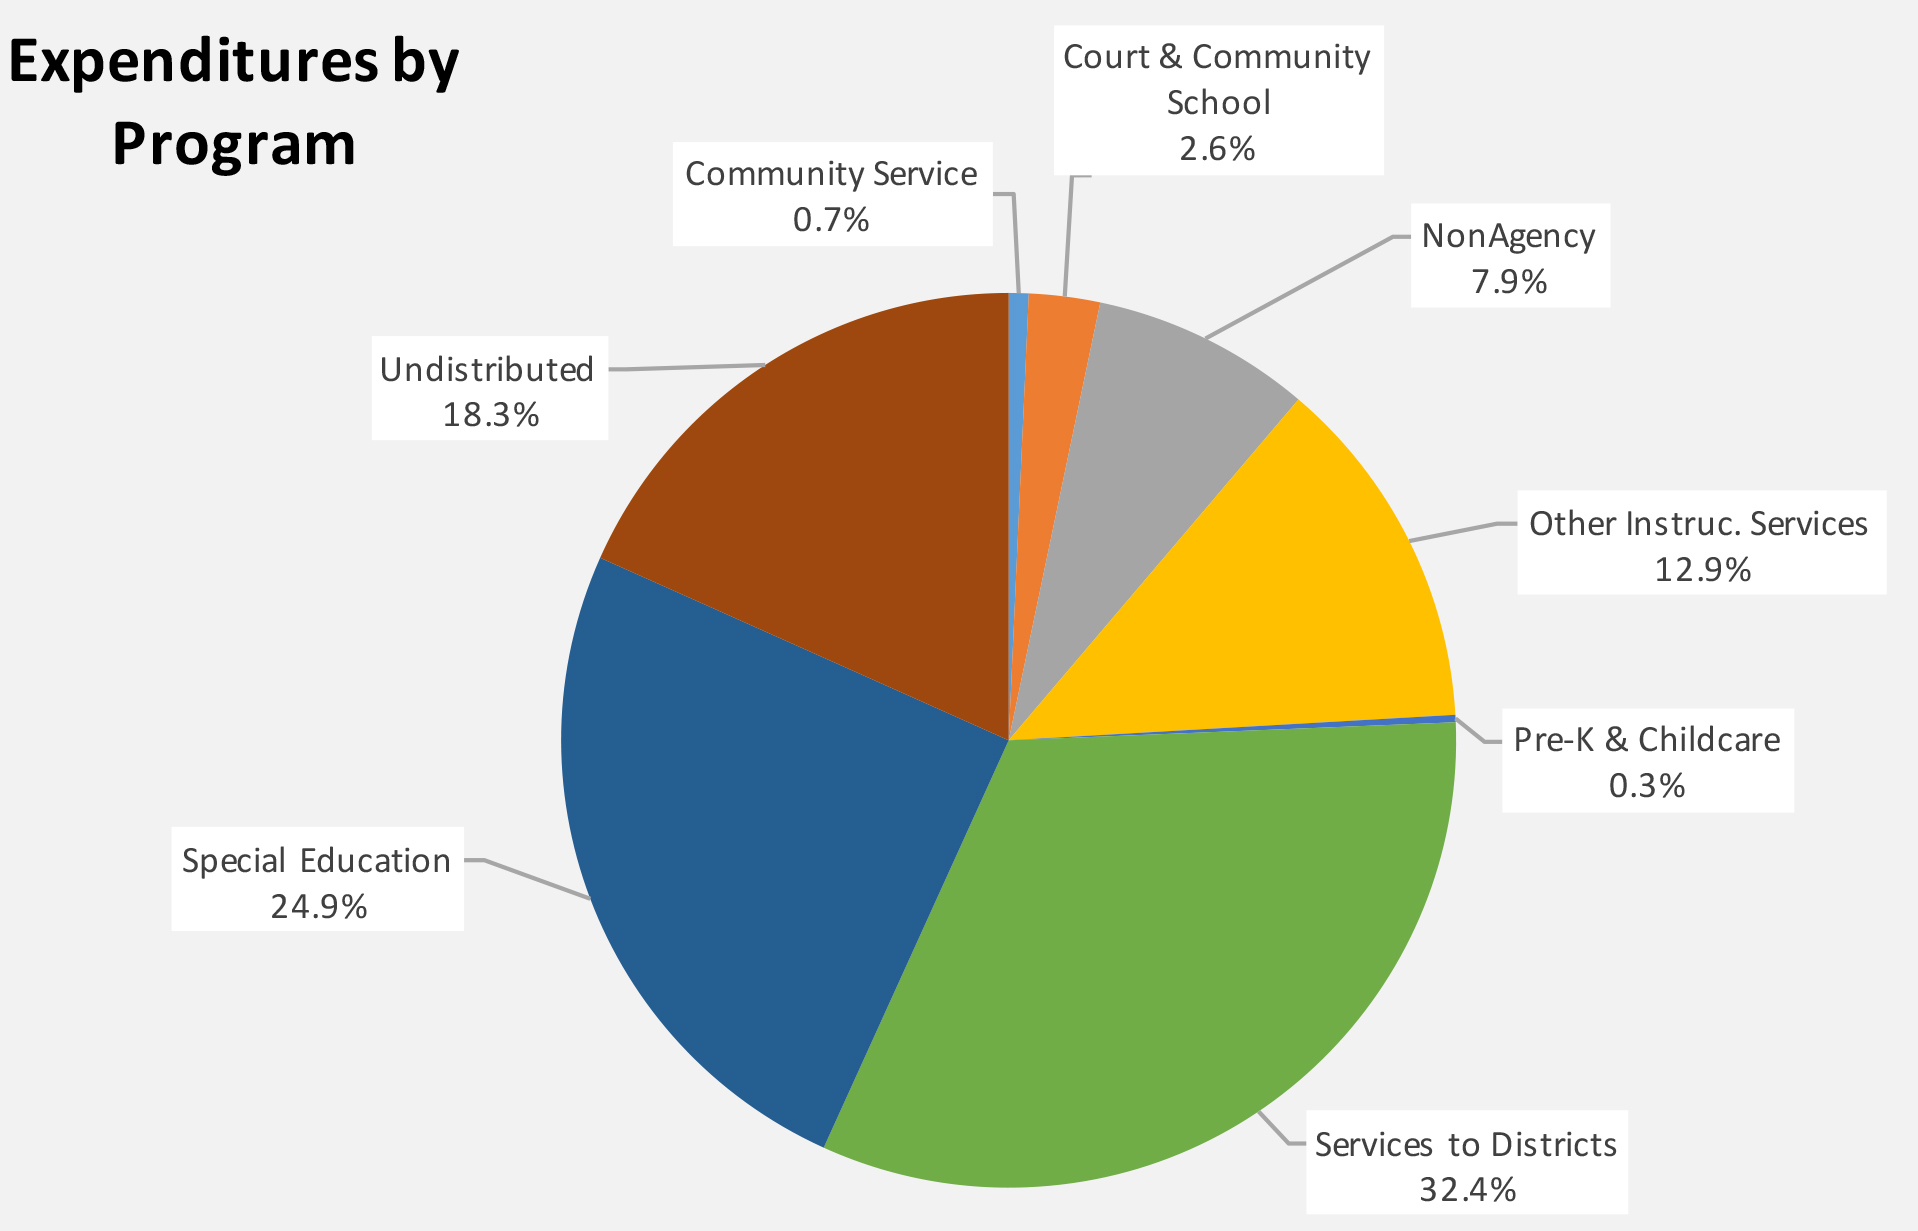 Pie chart presenting Expenditures by program